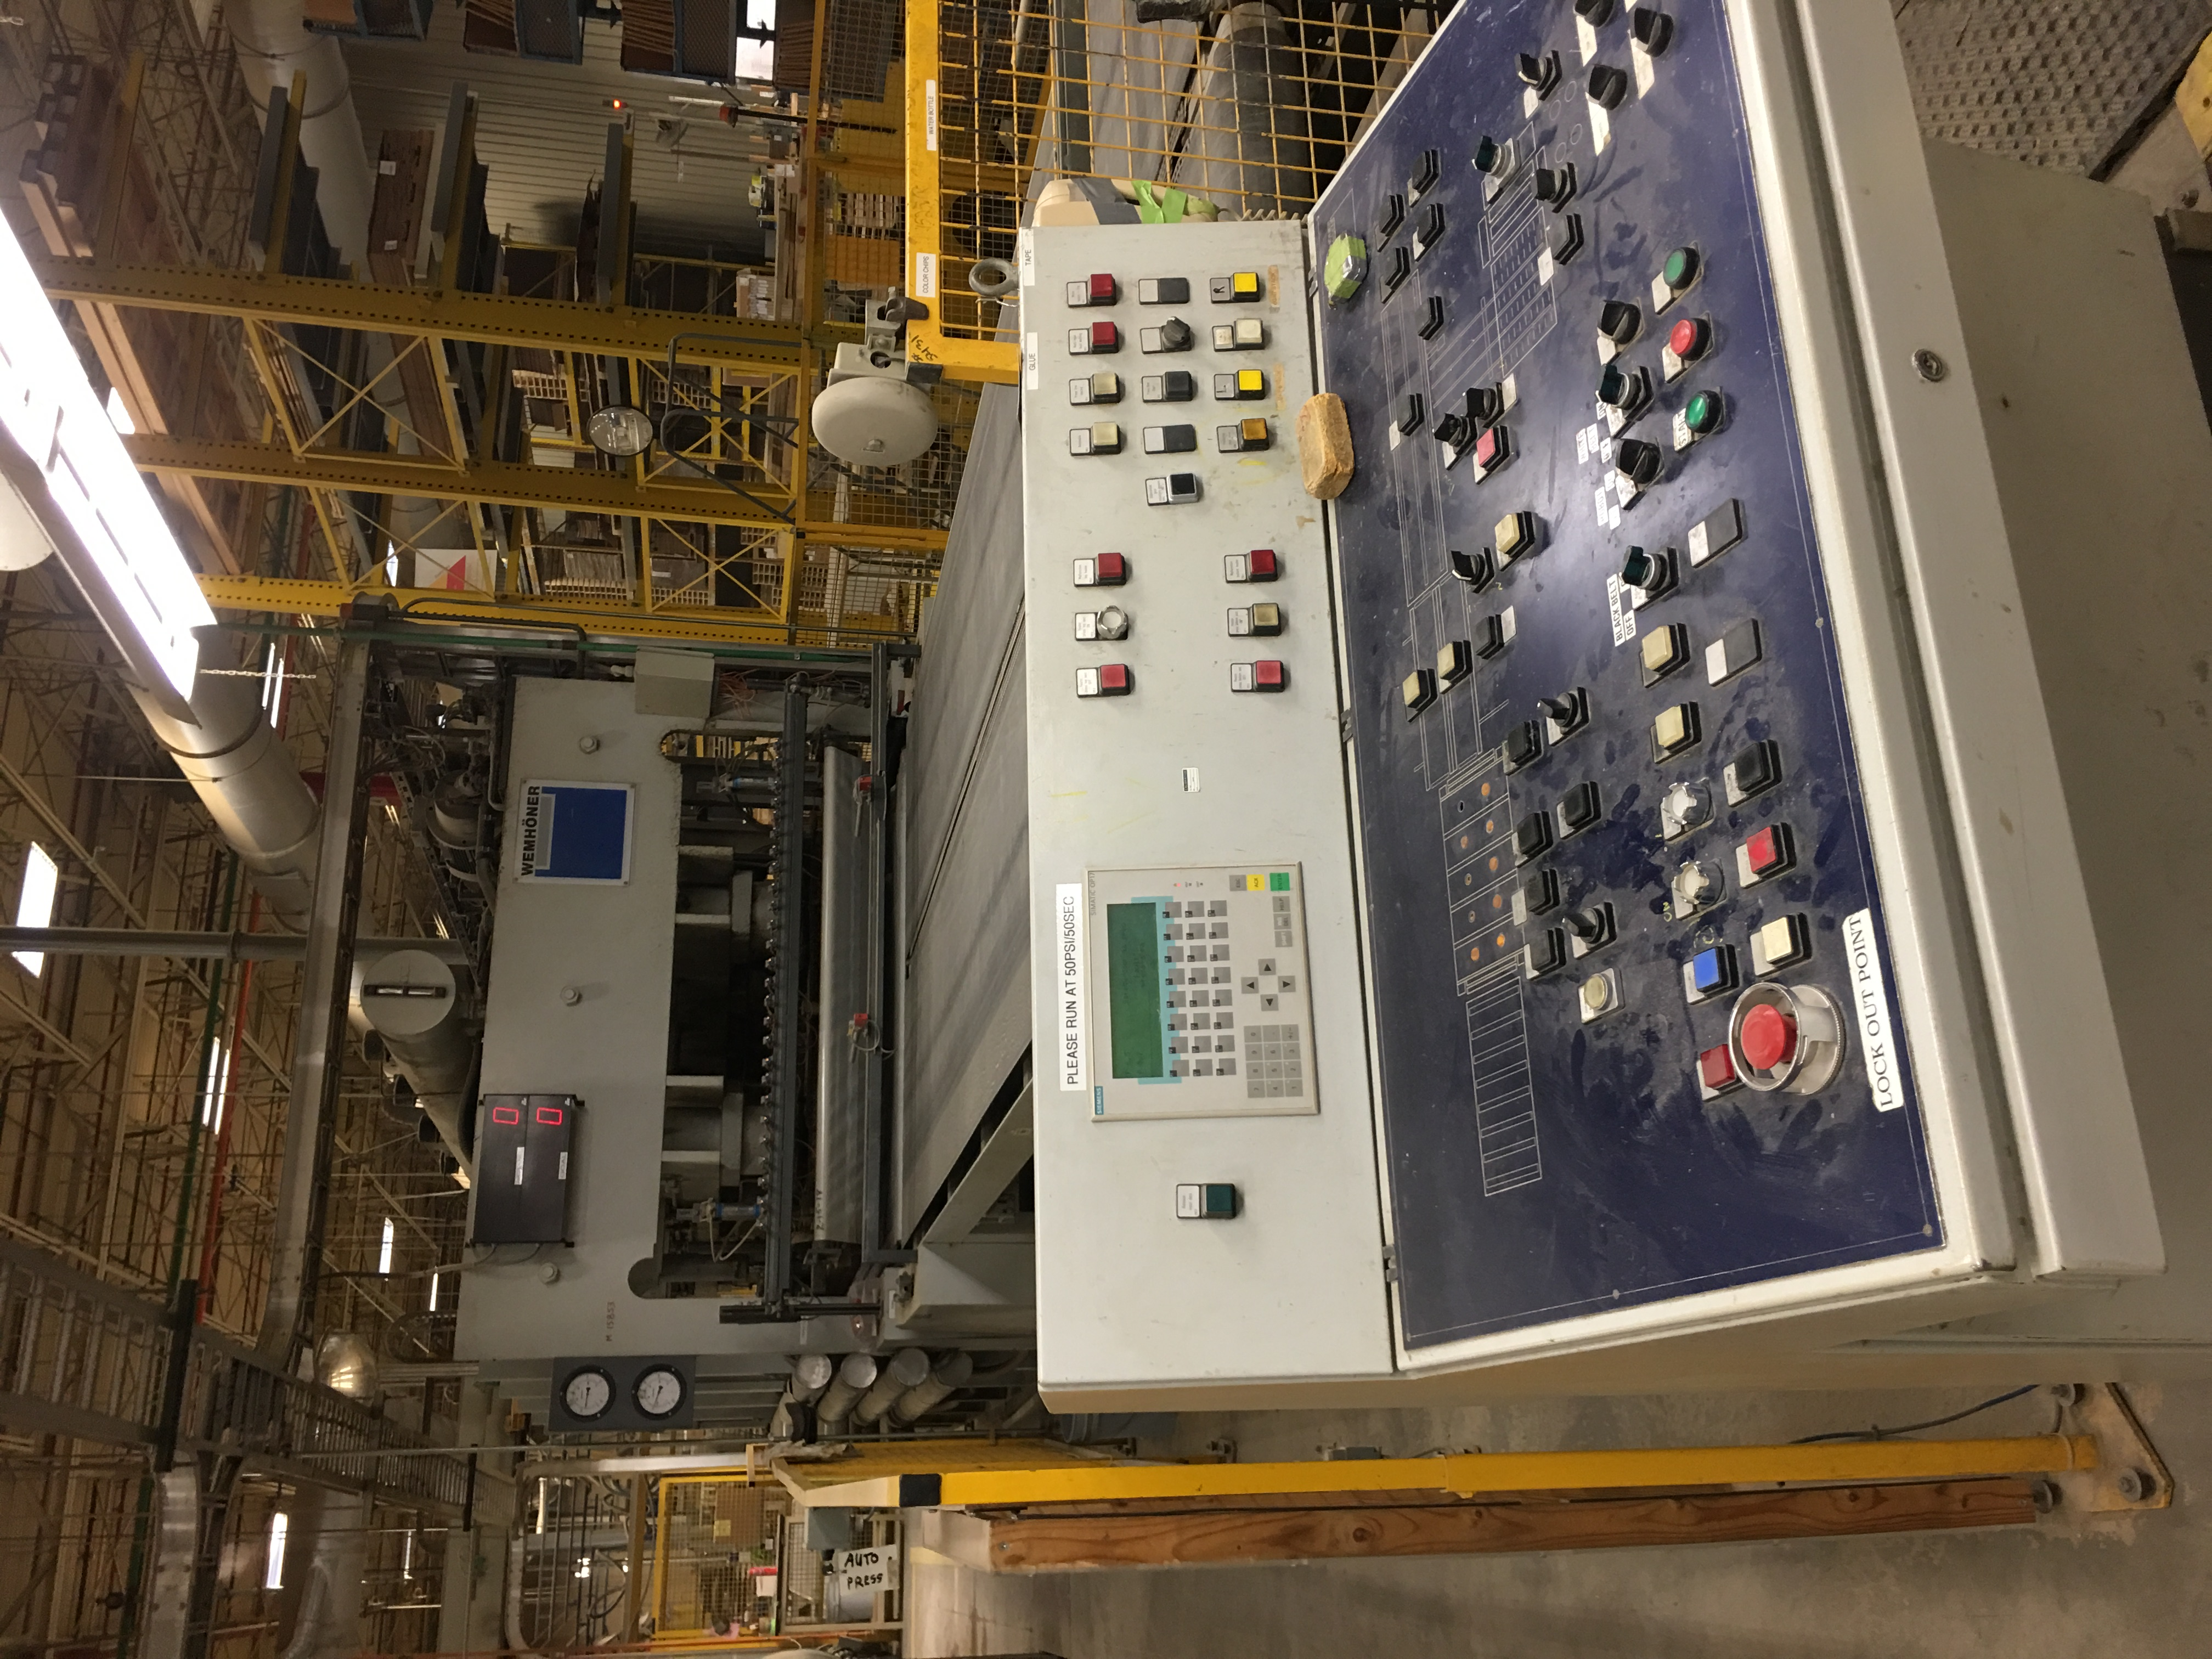 WEMHONER PRESS including infeed conveyor outfeed conveyor - Image 4 of 9